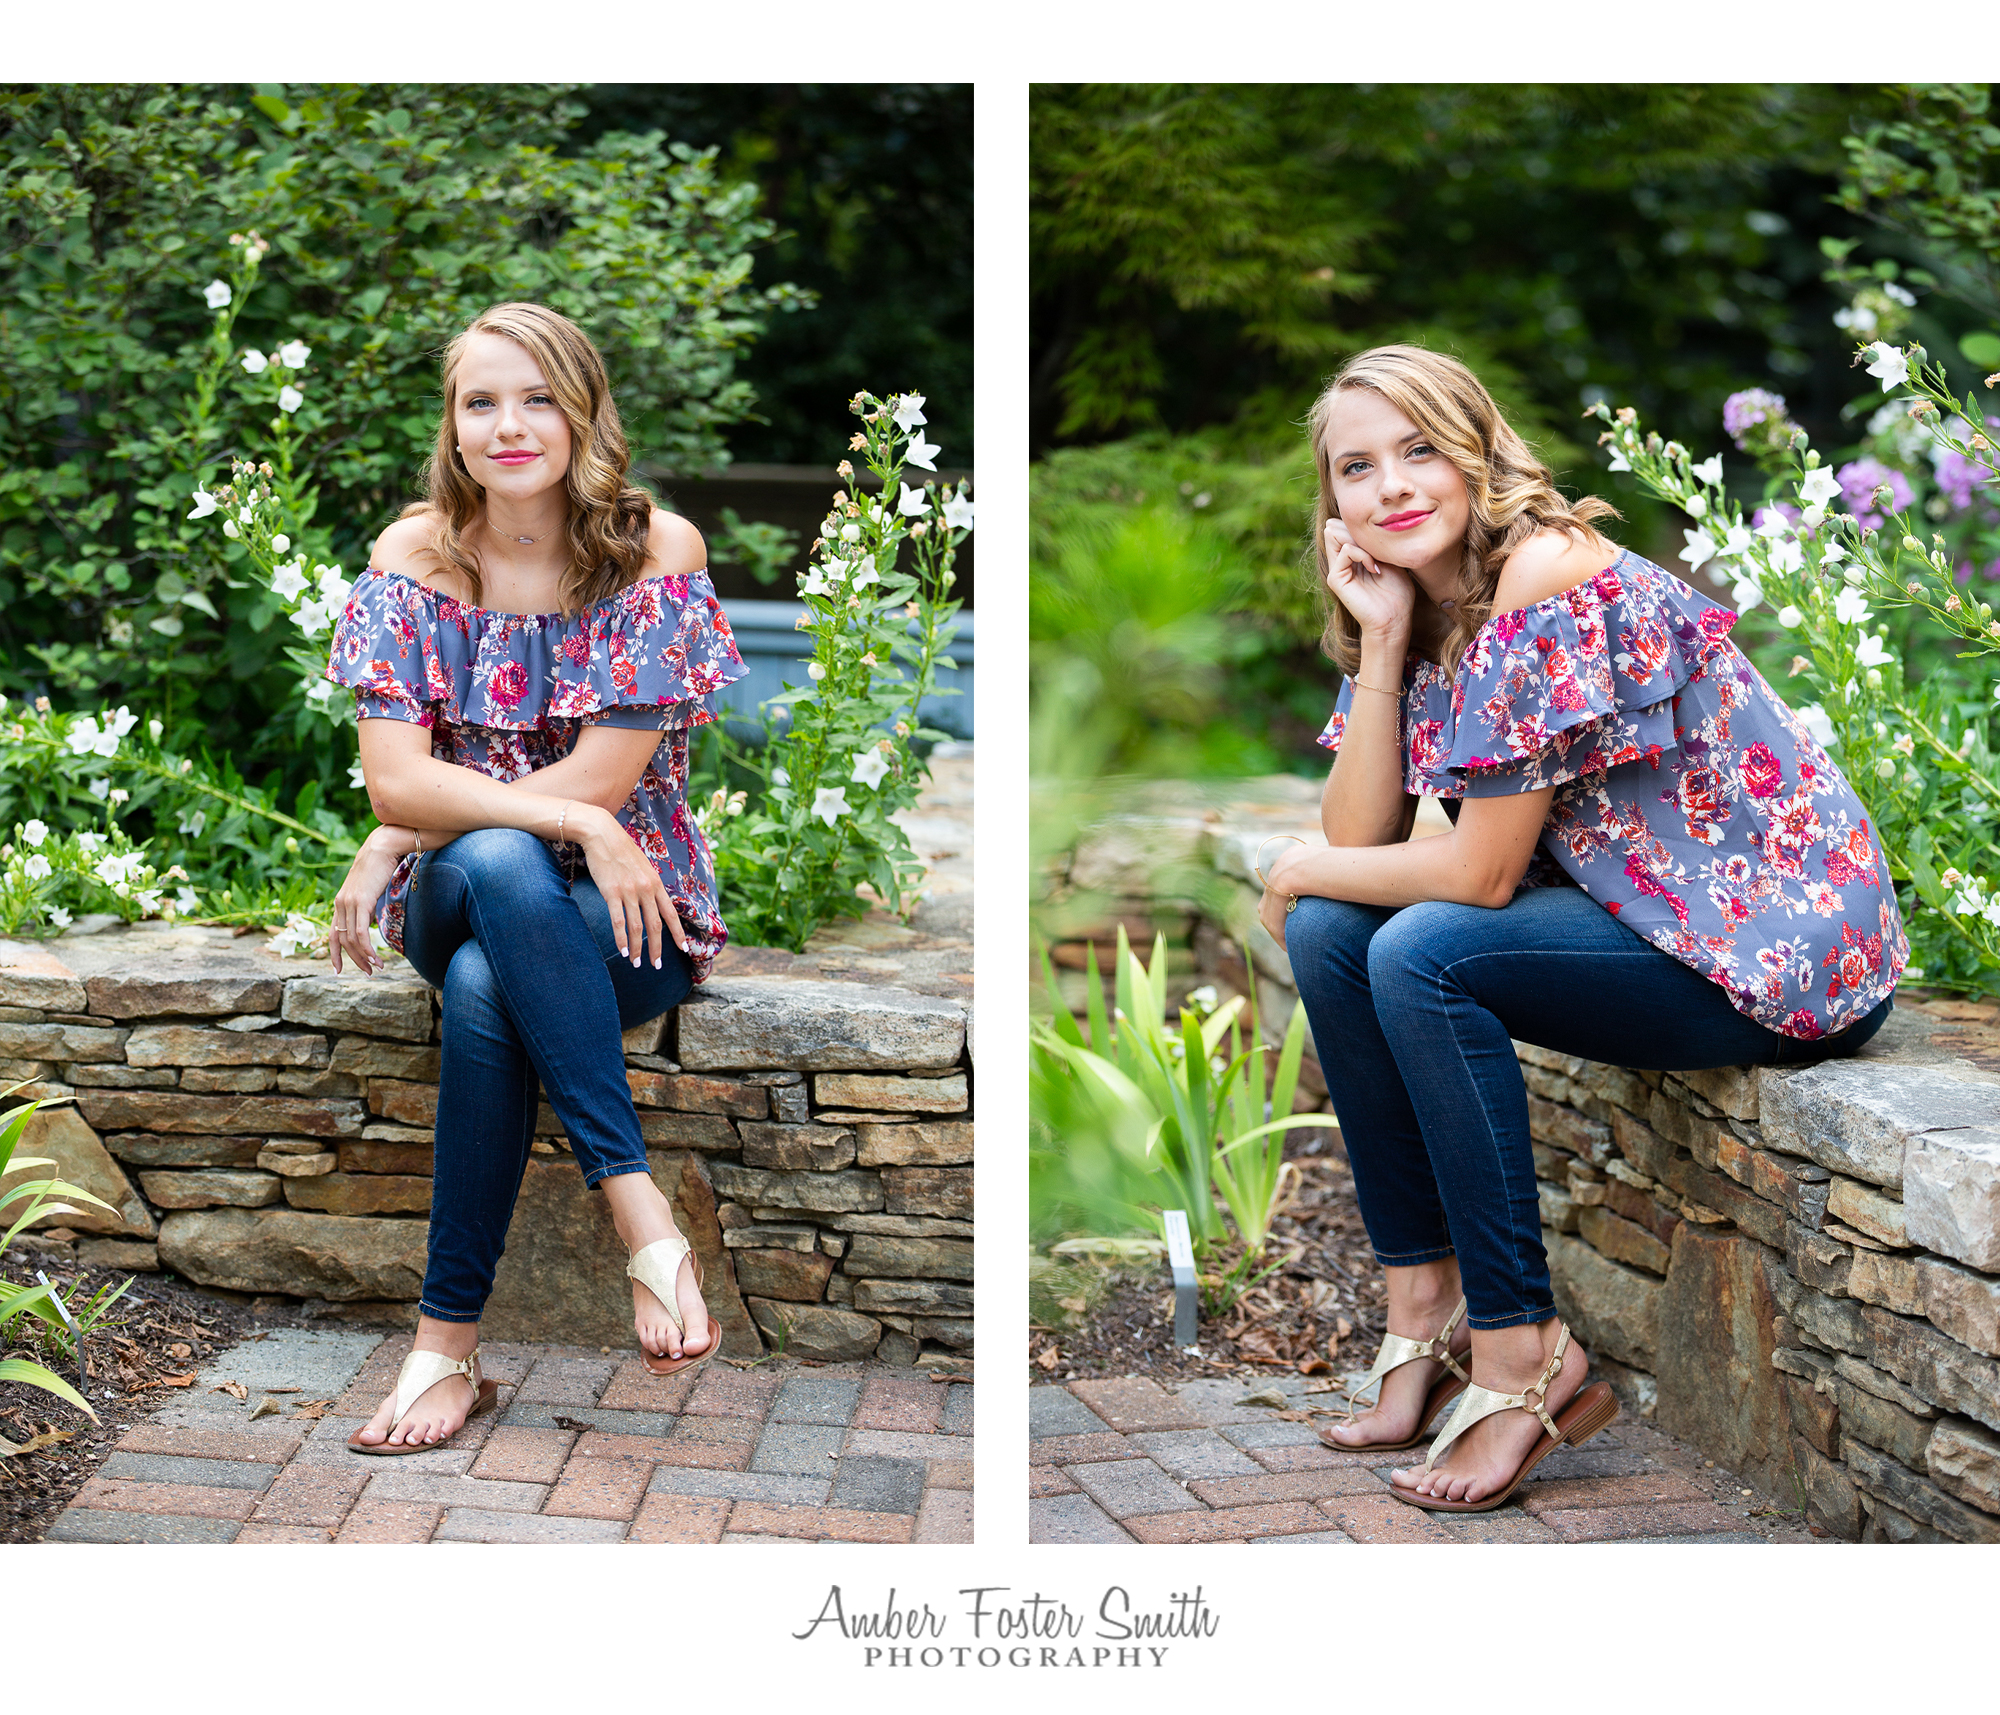 Amber Foster Smith Photography : Senior Portraits in Holly Springs